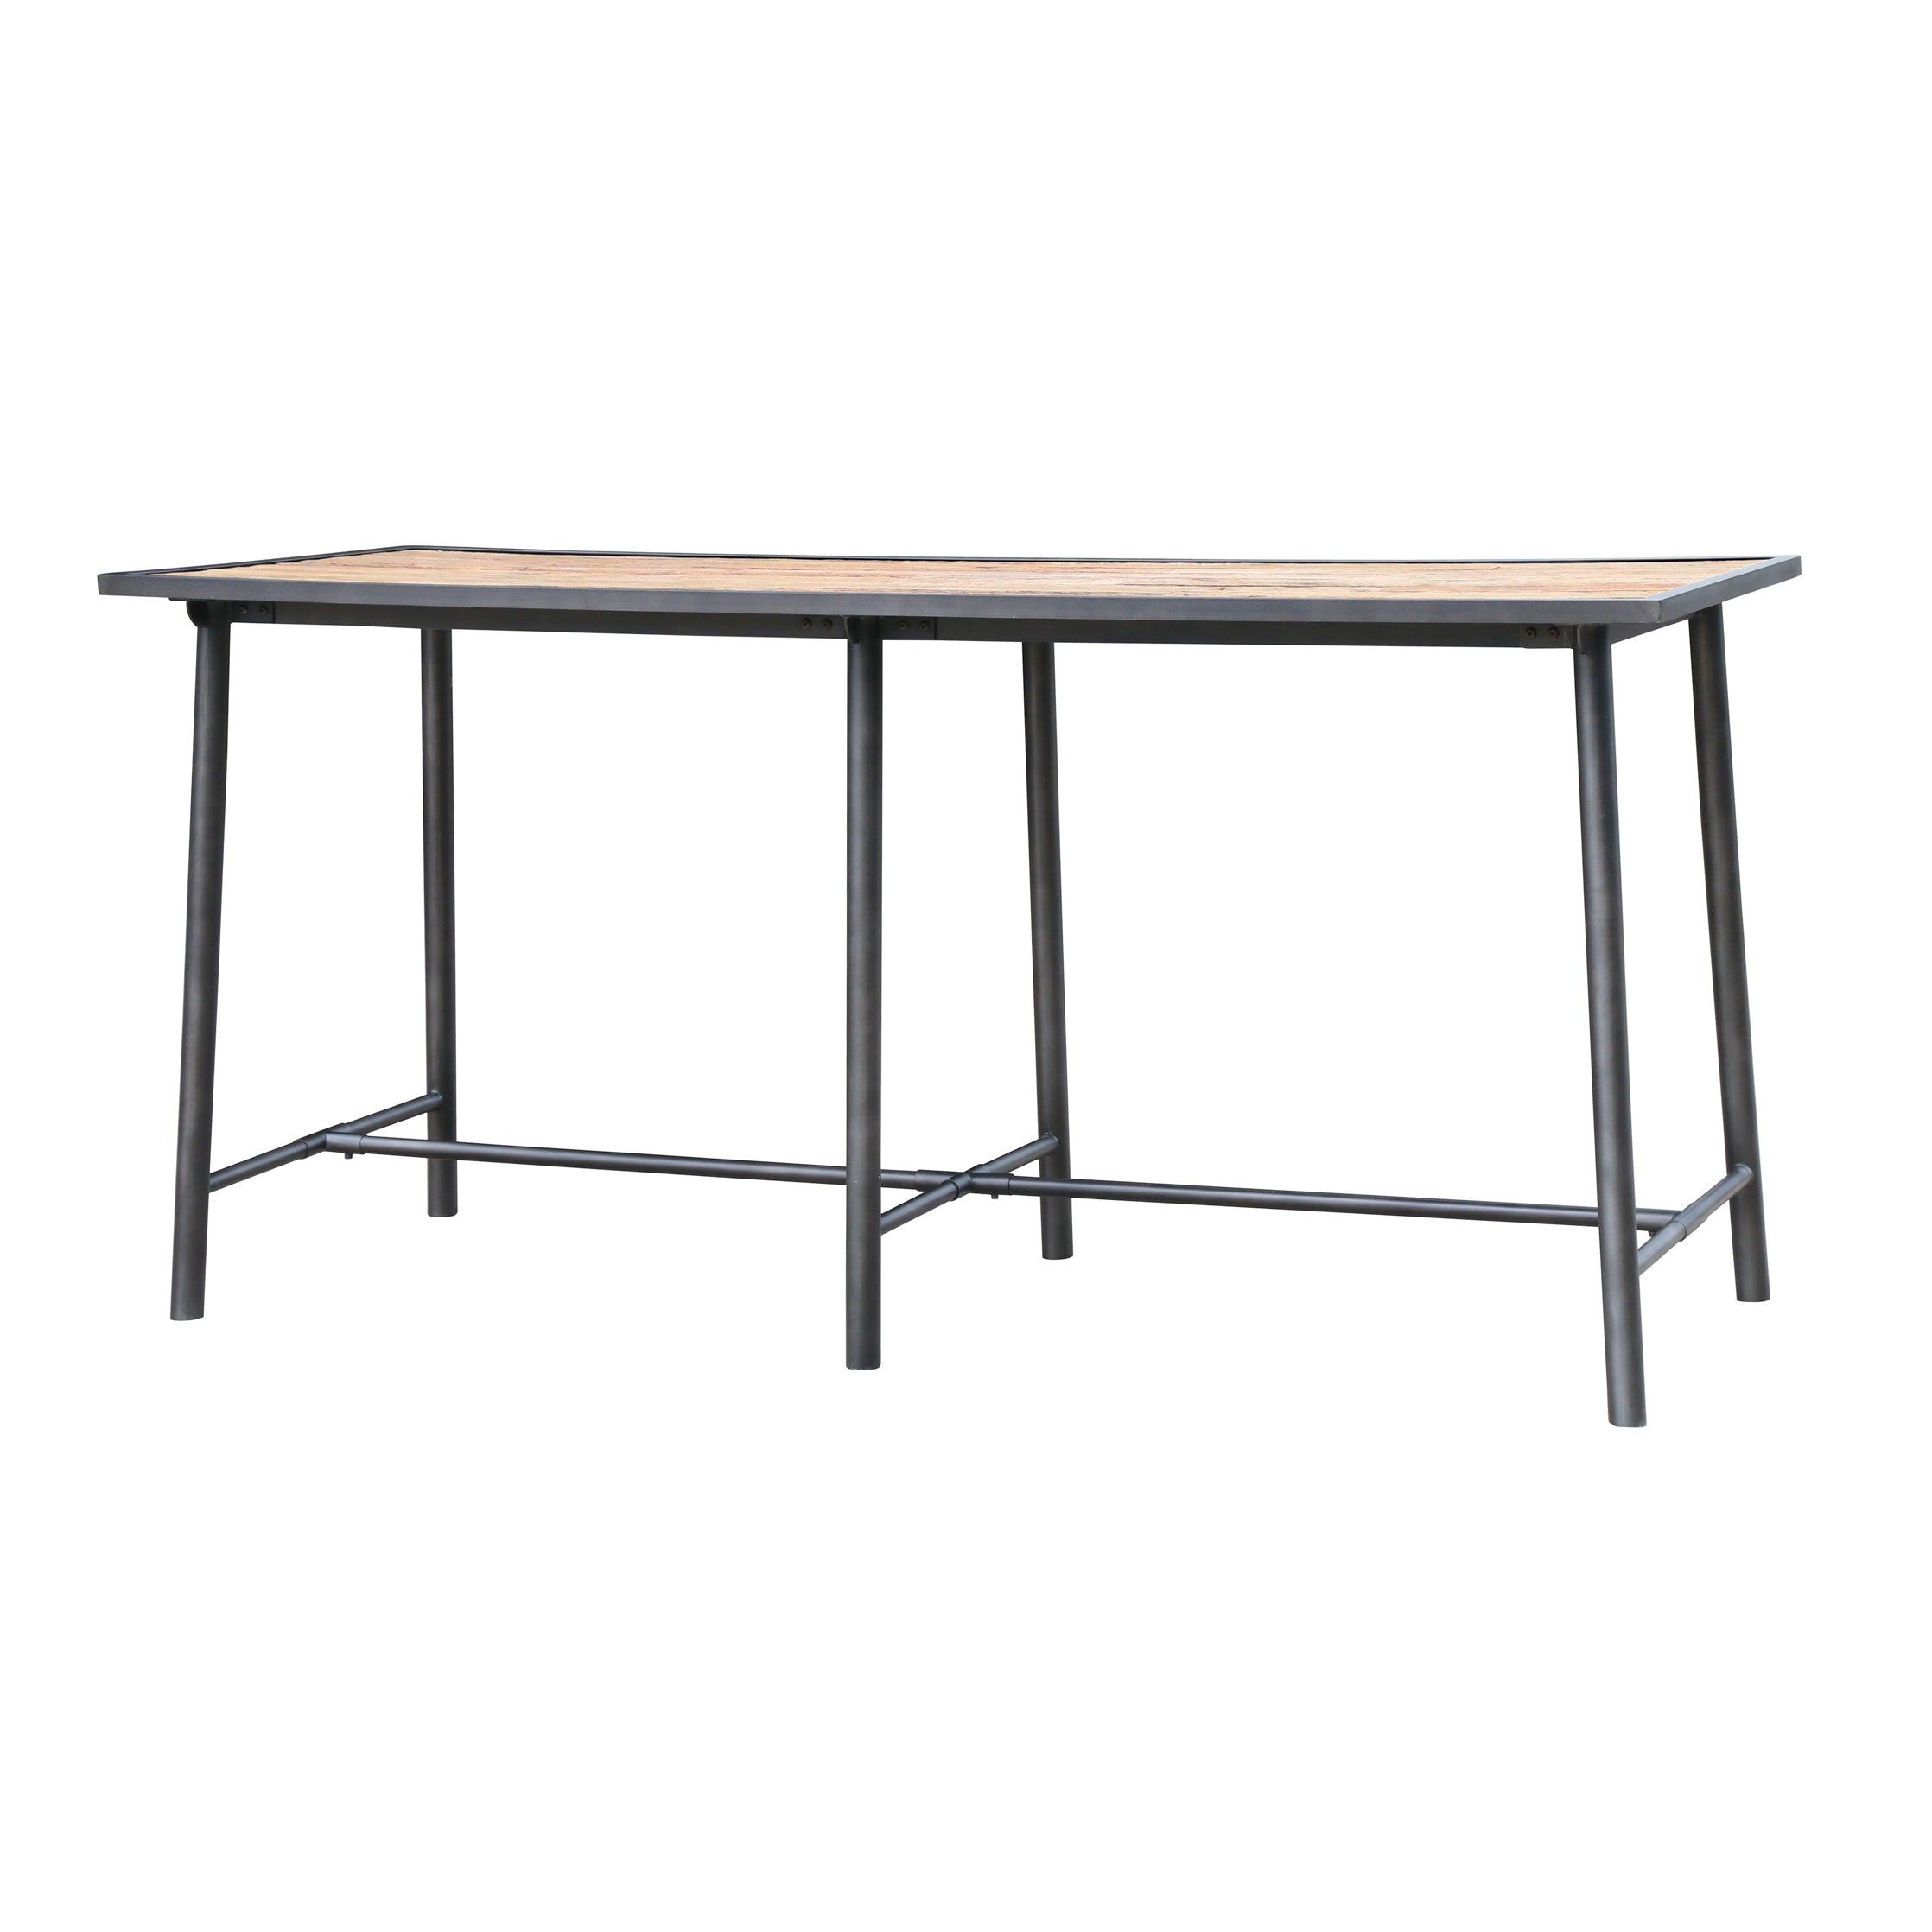 beckerd-bar-table-washed-old-oak